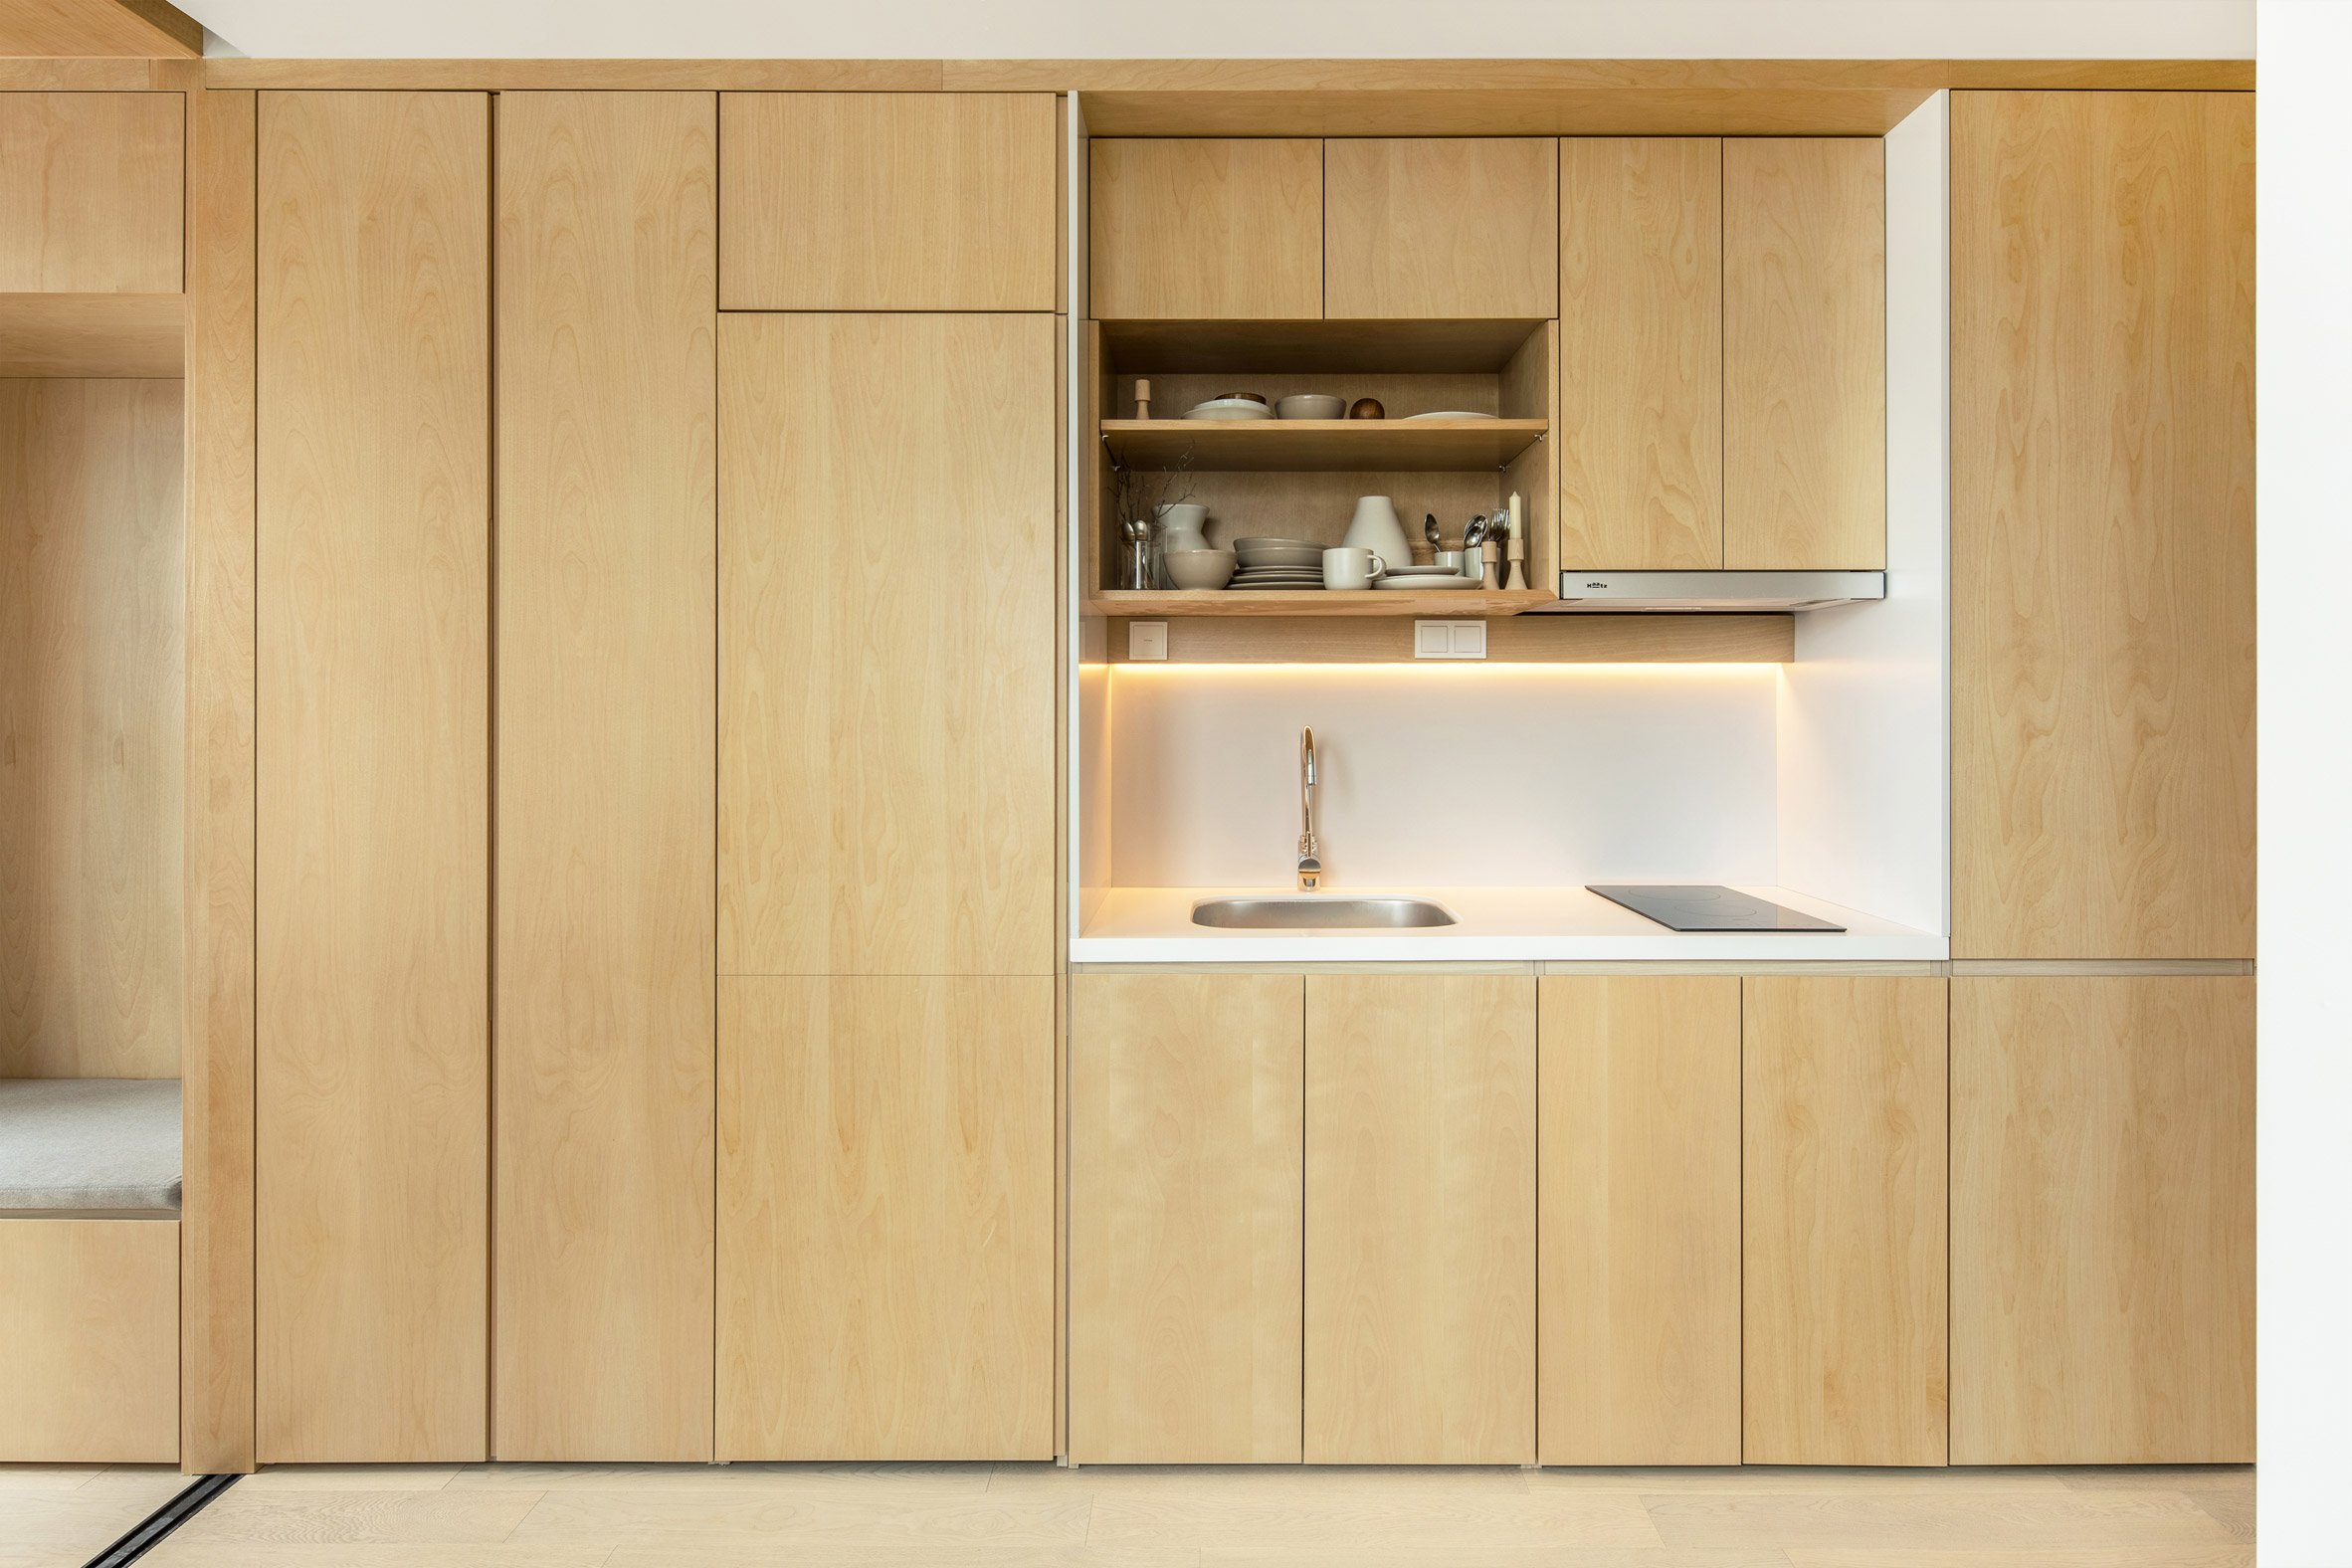 Kitchen inside a LIFE micro-apartment by Ian Lee